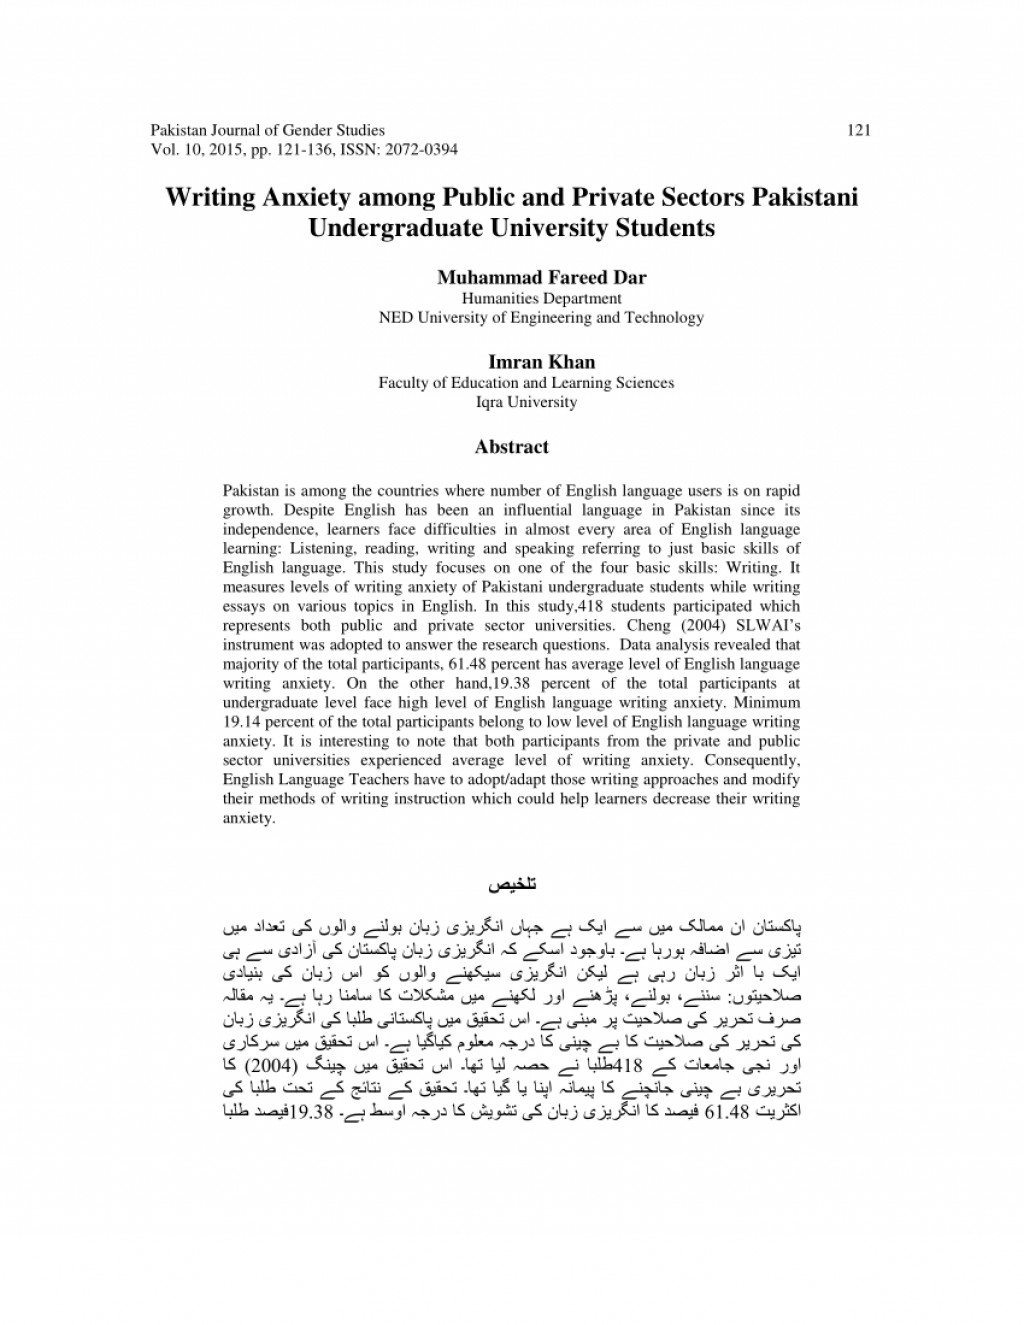 009 Research Paper Essay On Education System In Pakistan With Outline Impressive Our Large